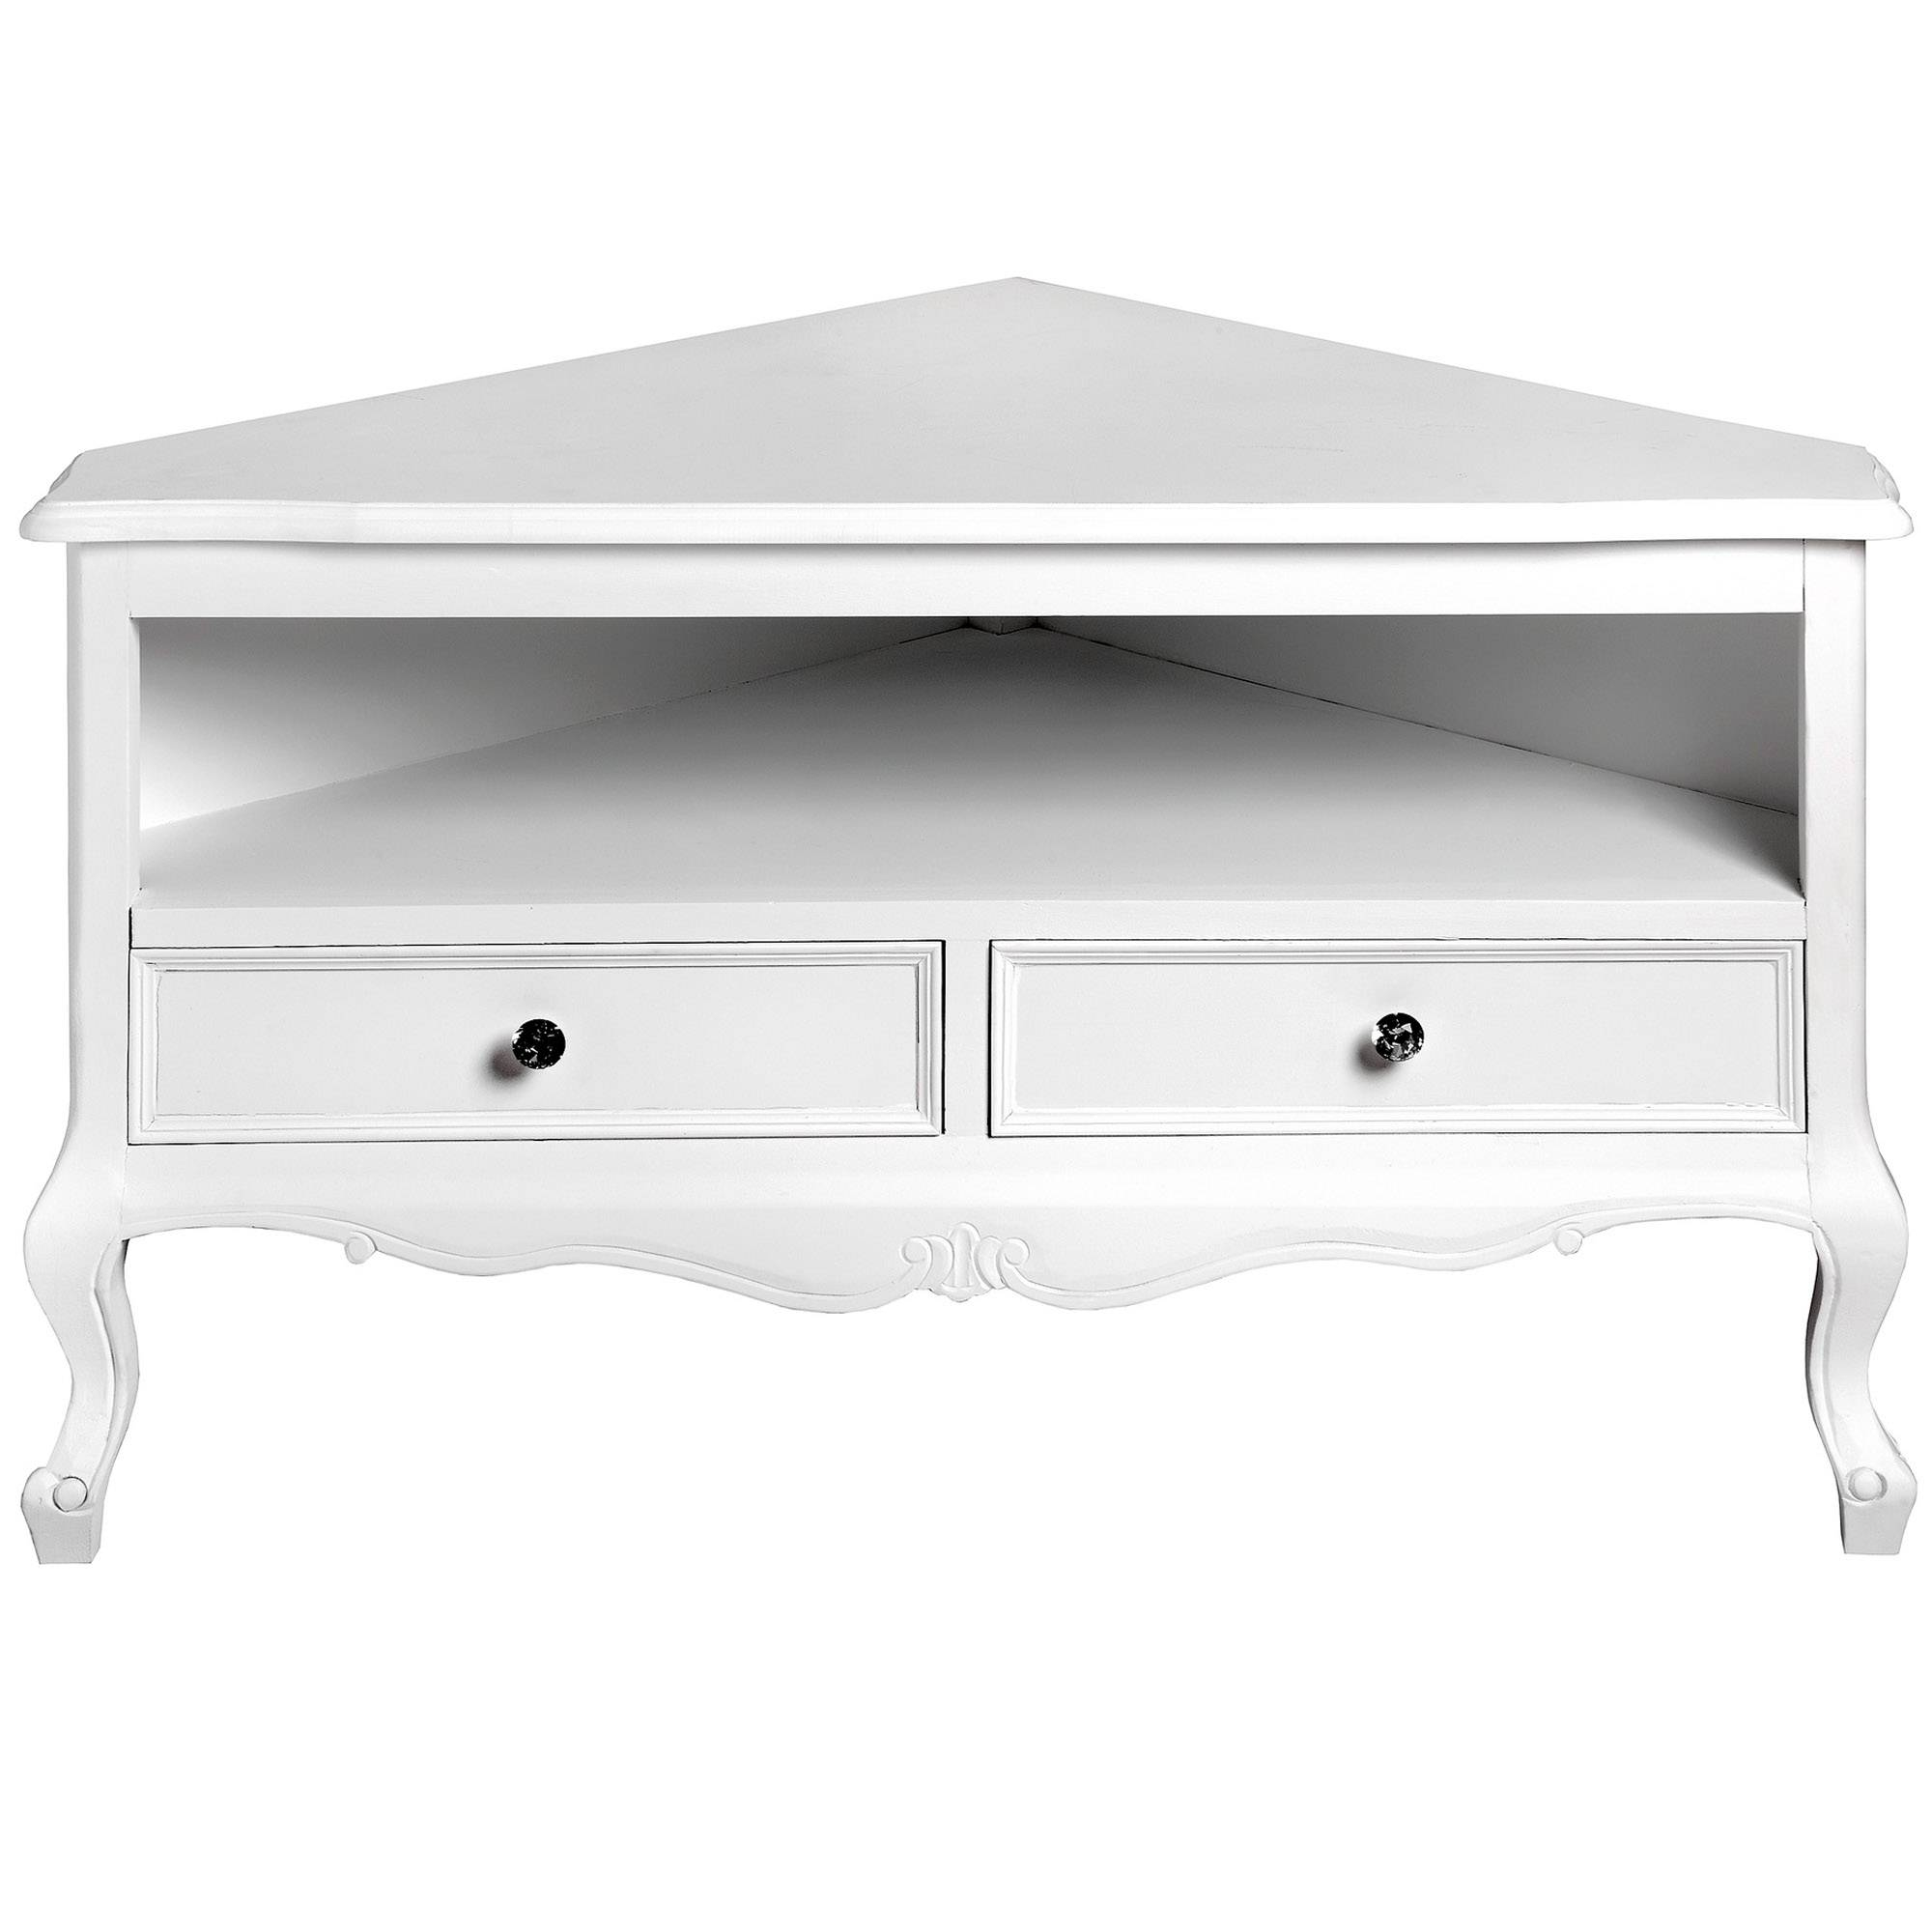 Fleur White Shabby Chic Corner Tv Unit | Lounge | Homesdirect365 With Regard To White Corner Tv Cabinets (View 2 of 15)